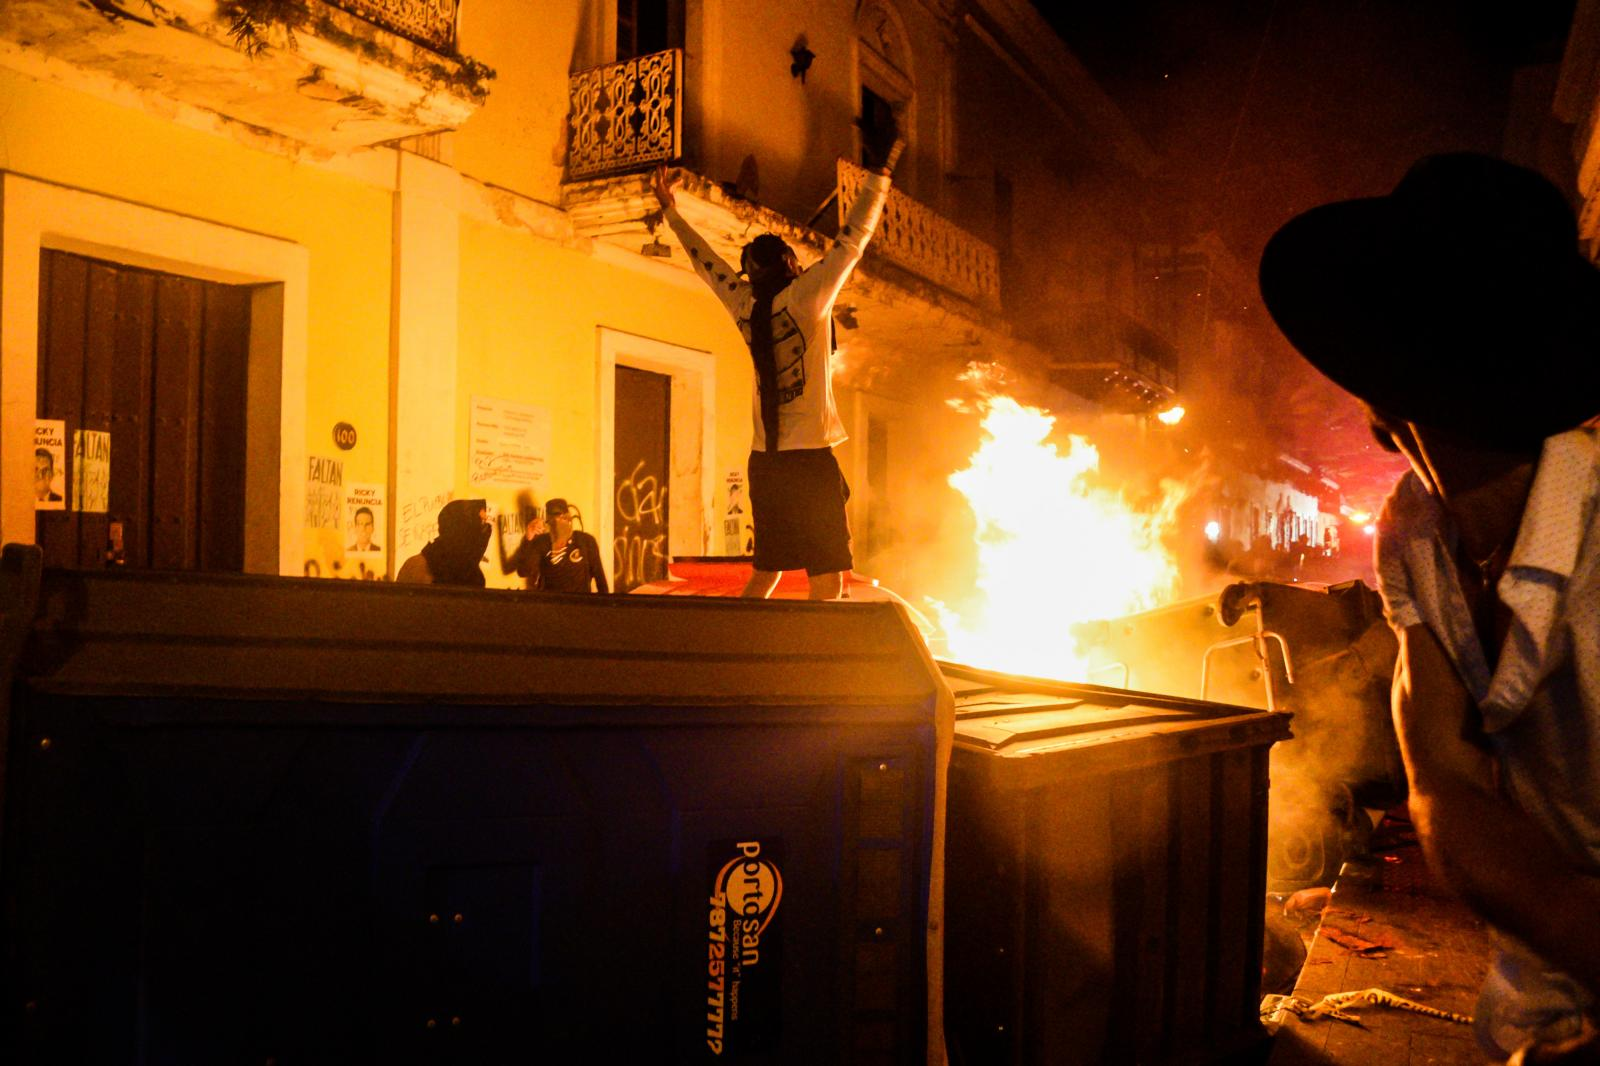 Demonstrators set fire to trashcans during clashes with riot police.